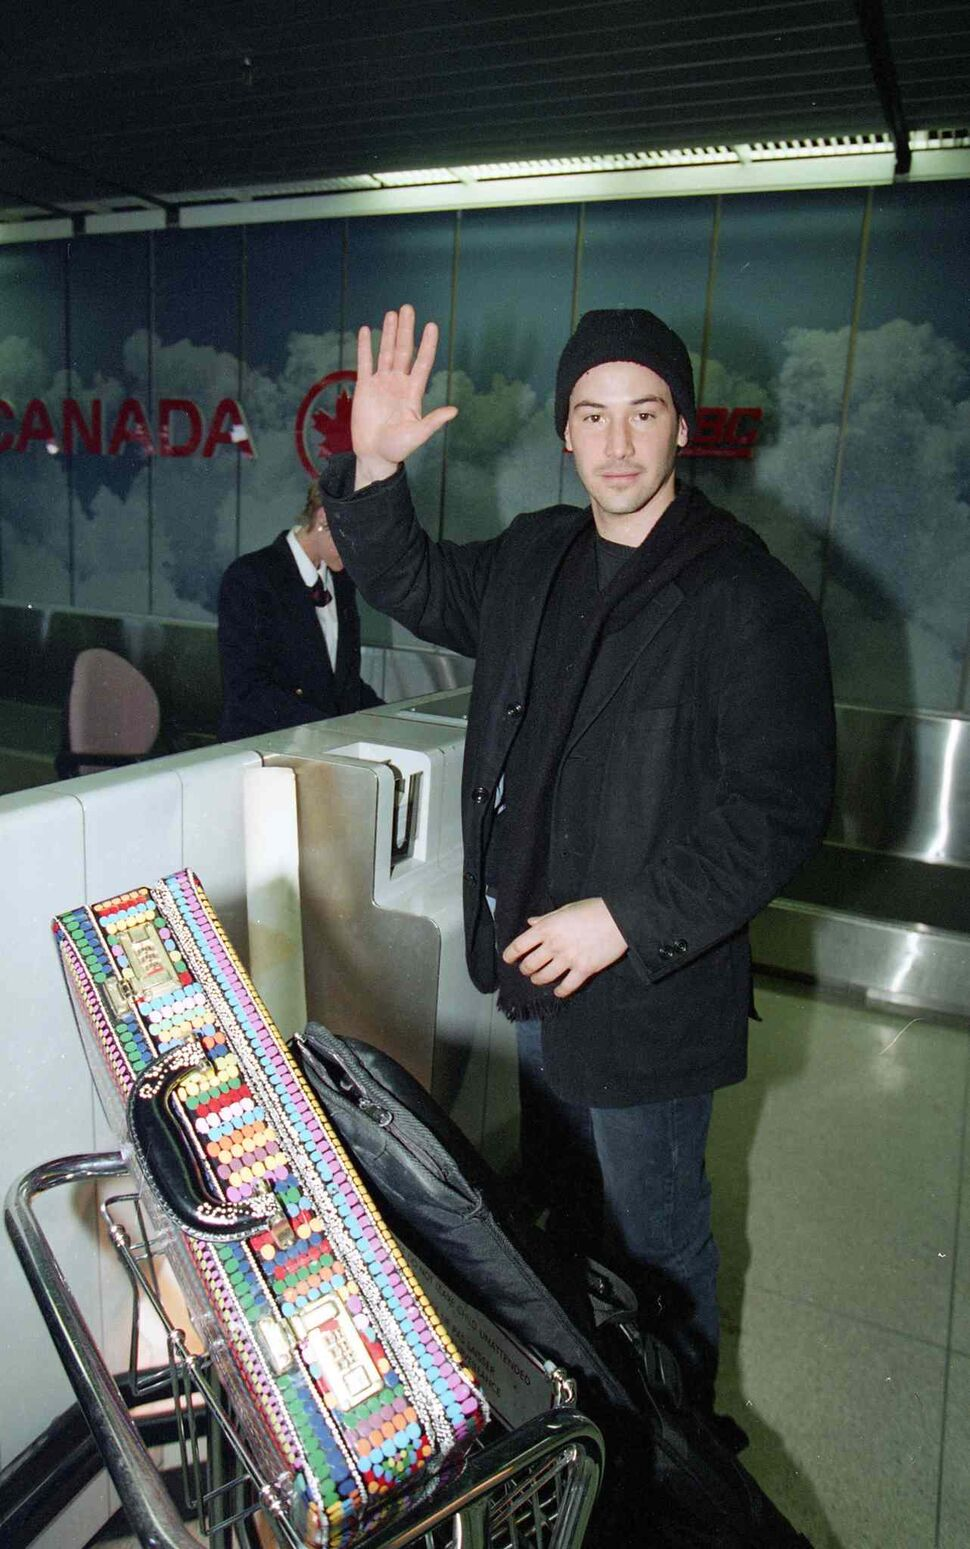 Keanu Reeves leaves Winnipeg and signs autographs while before going through security at the airport in February, 1995 . (MARC GALLANT / WINNIPEG FREE PRESS Files)